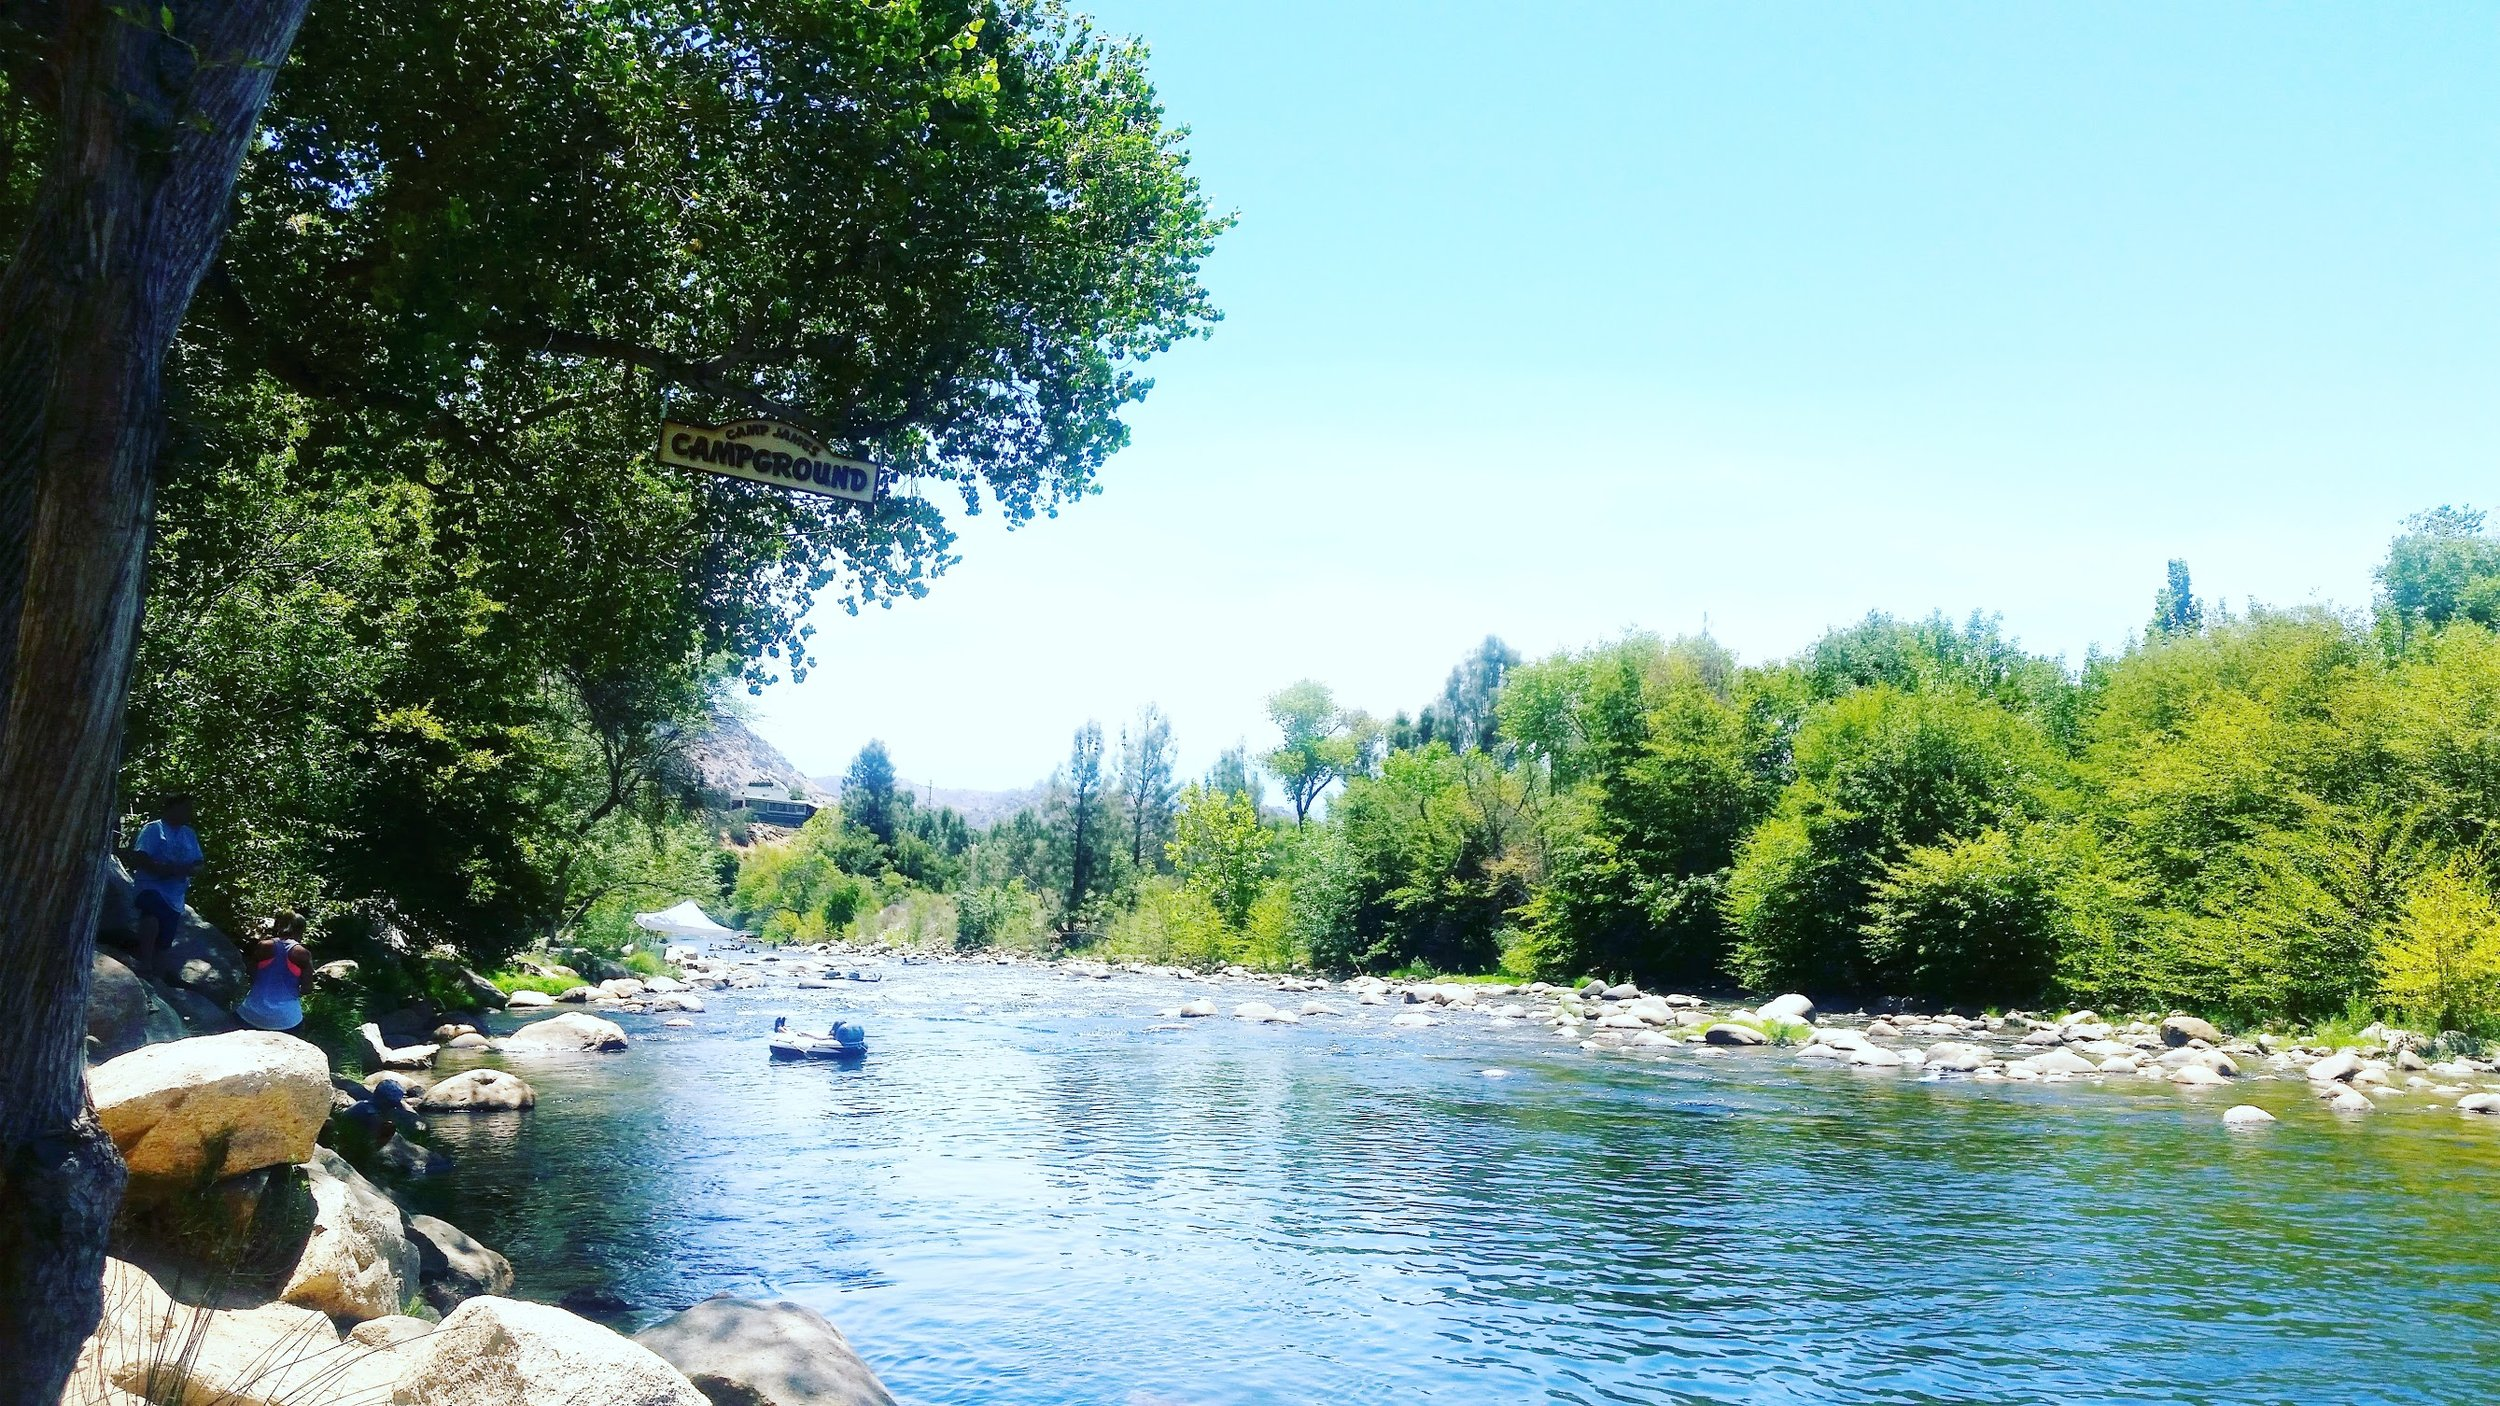 Tubing on the Kern River